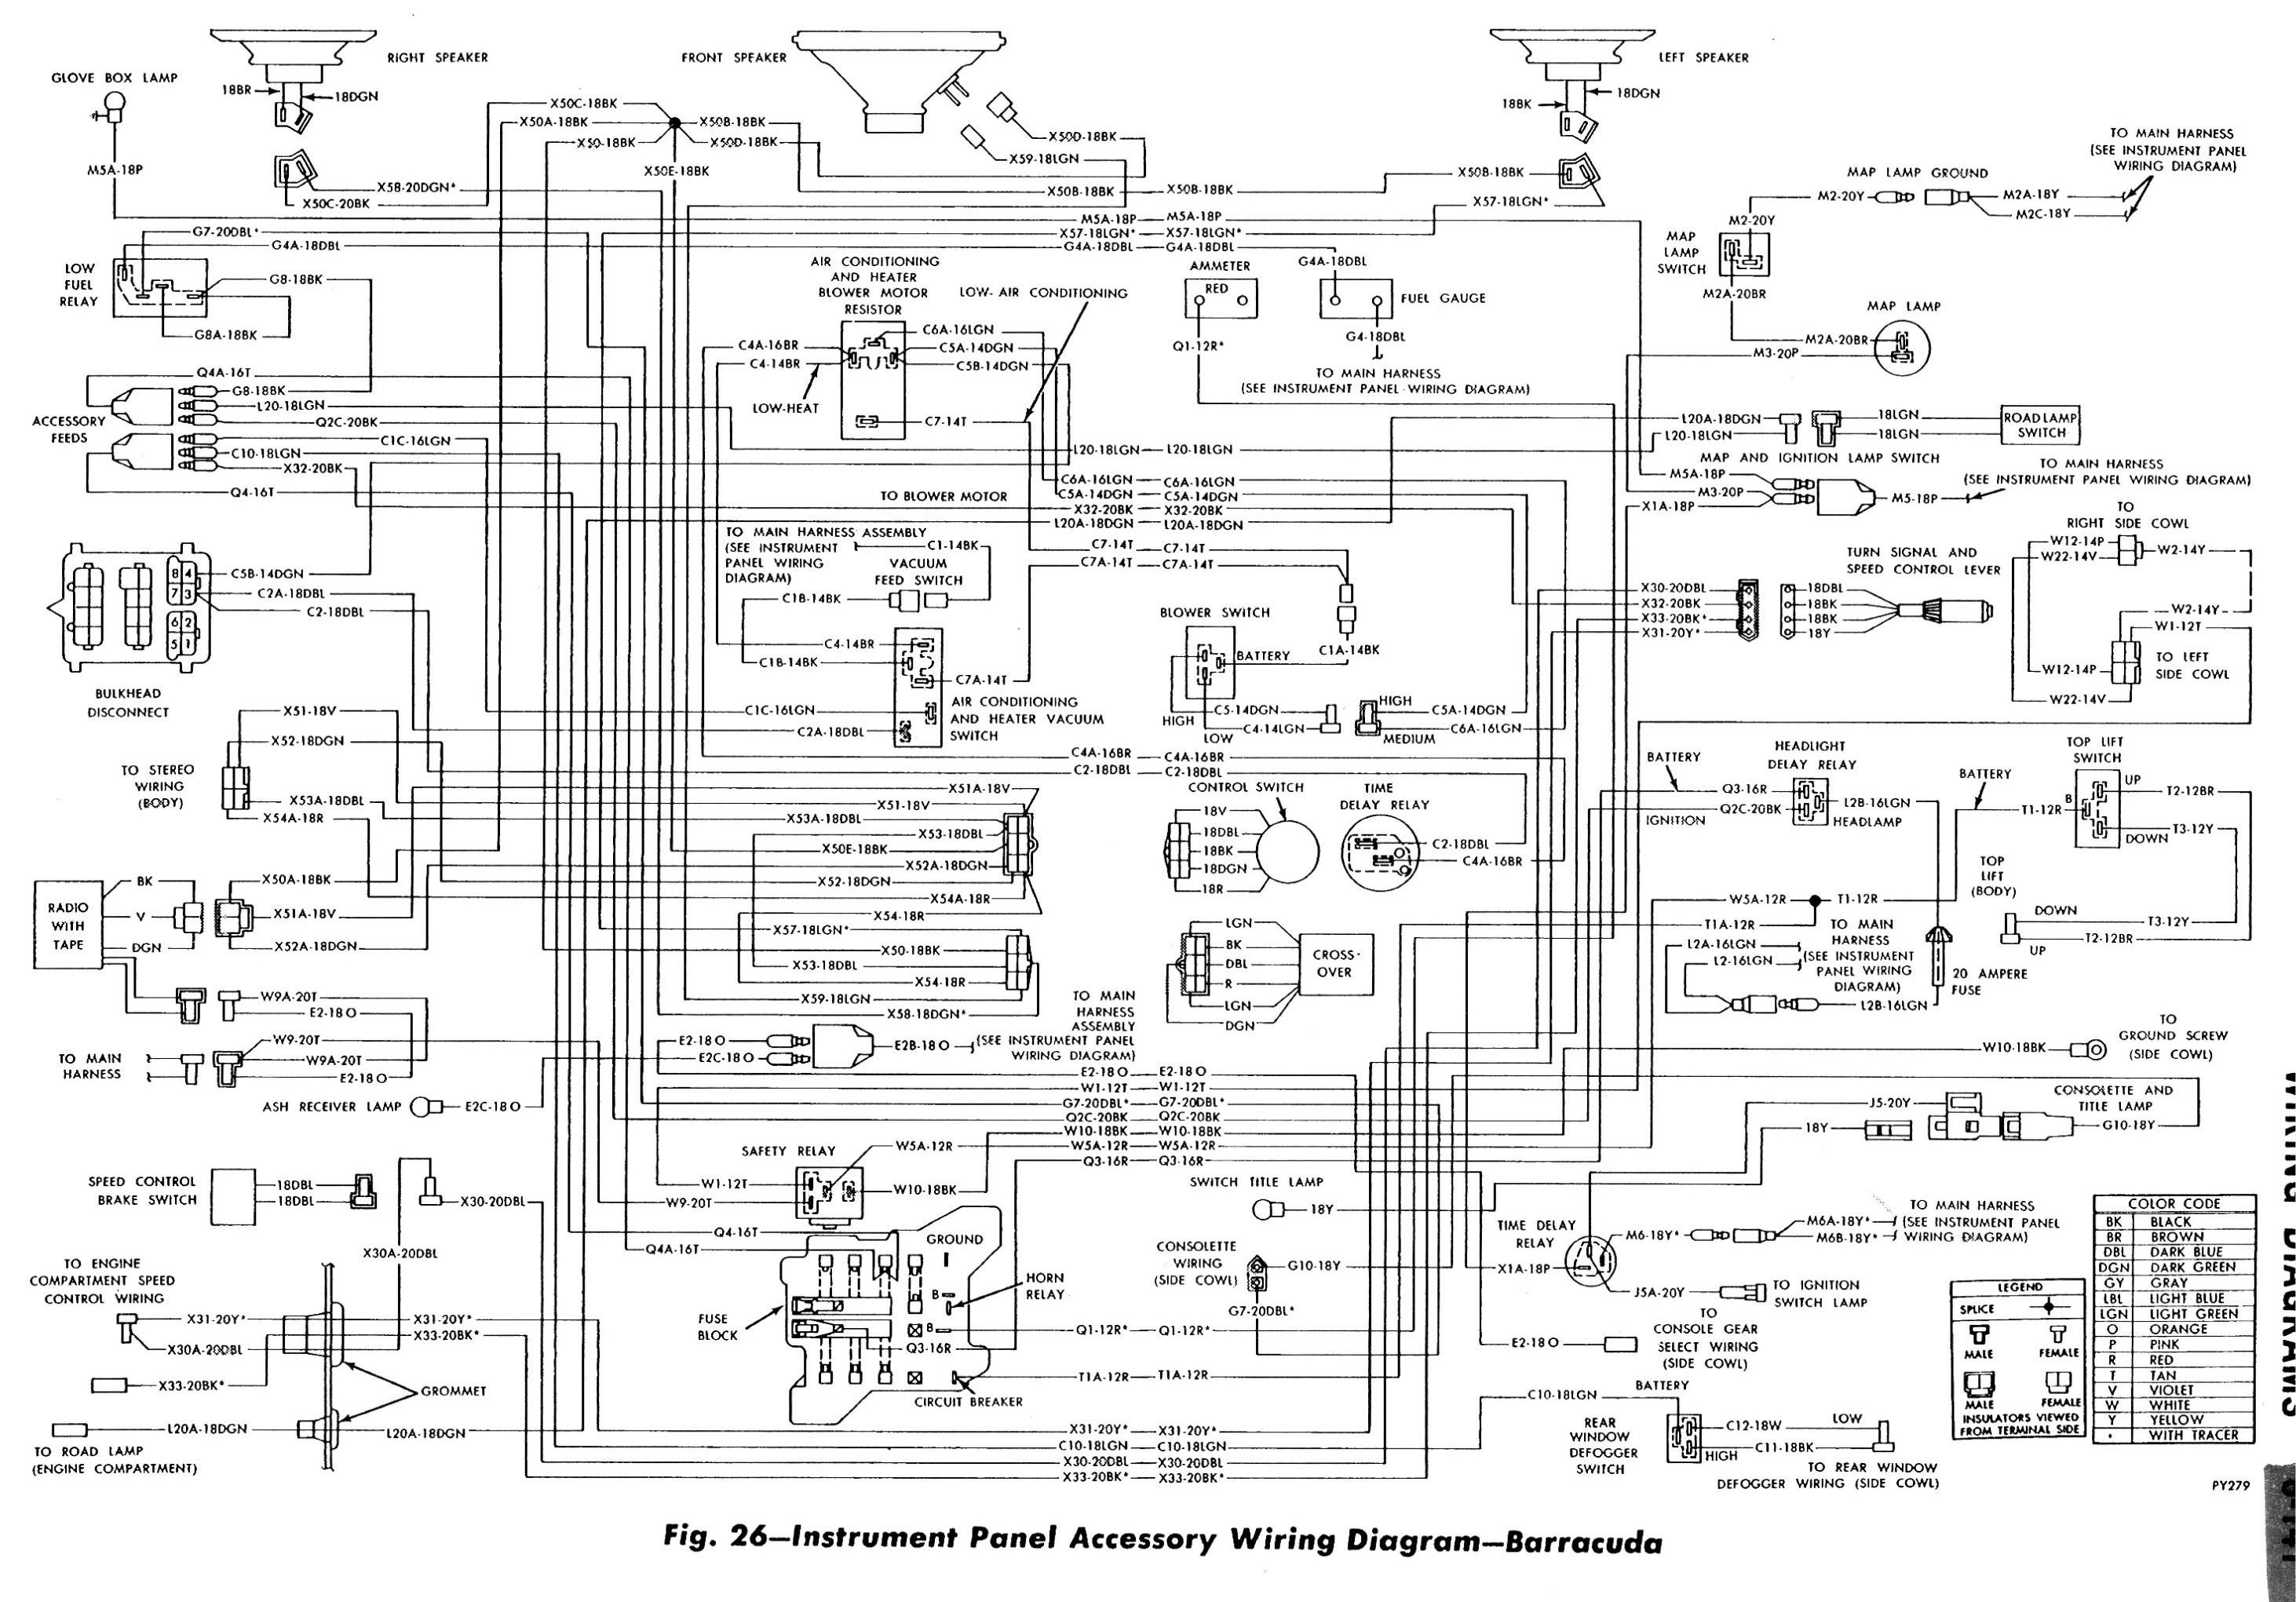 Terrific 1970 Plymouth Roadrunner Fuse Box Diagram Data Schema Wiring 101 Photwellnesstrialsorg